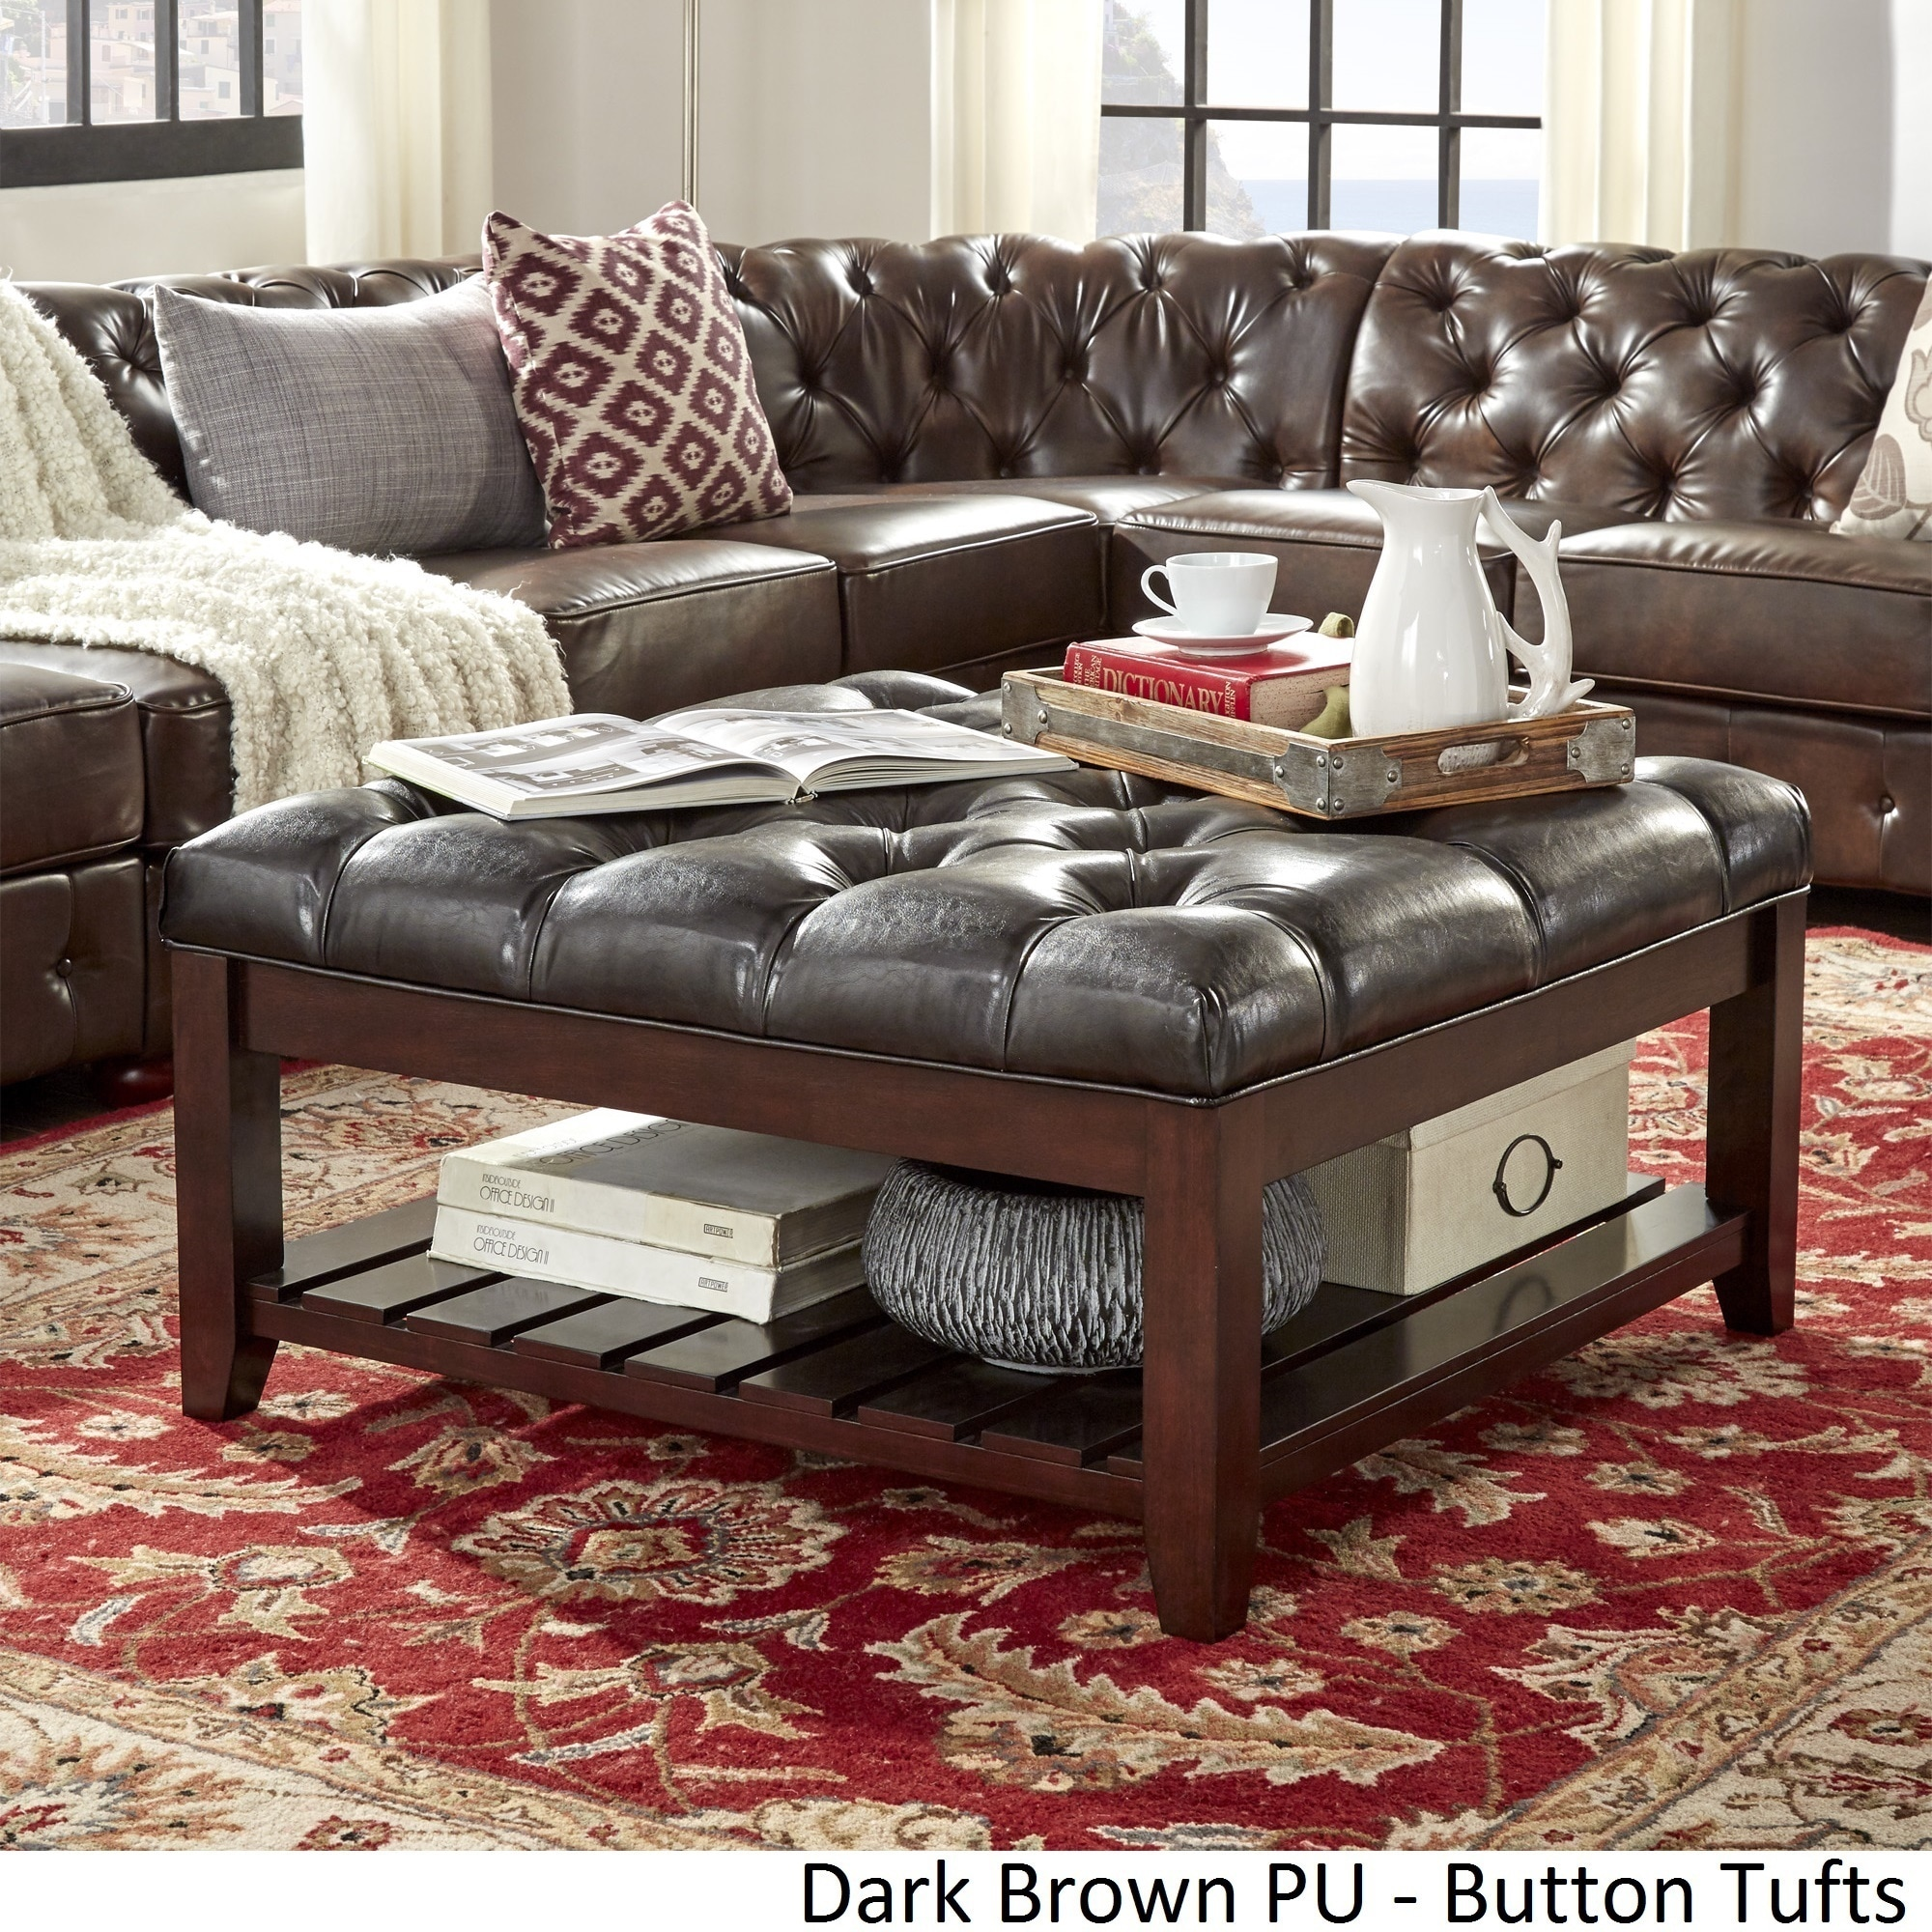 Lennon Espresso Planked Storage Ottoman Coffee Table By INSPIRE Q Classic    Free Shipping Today   Overstock   20137484